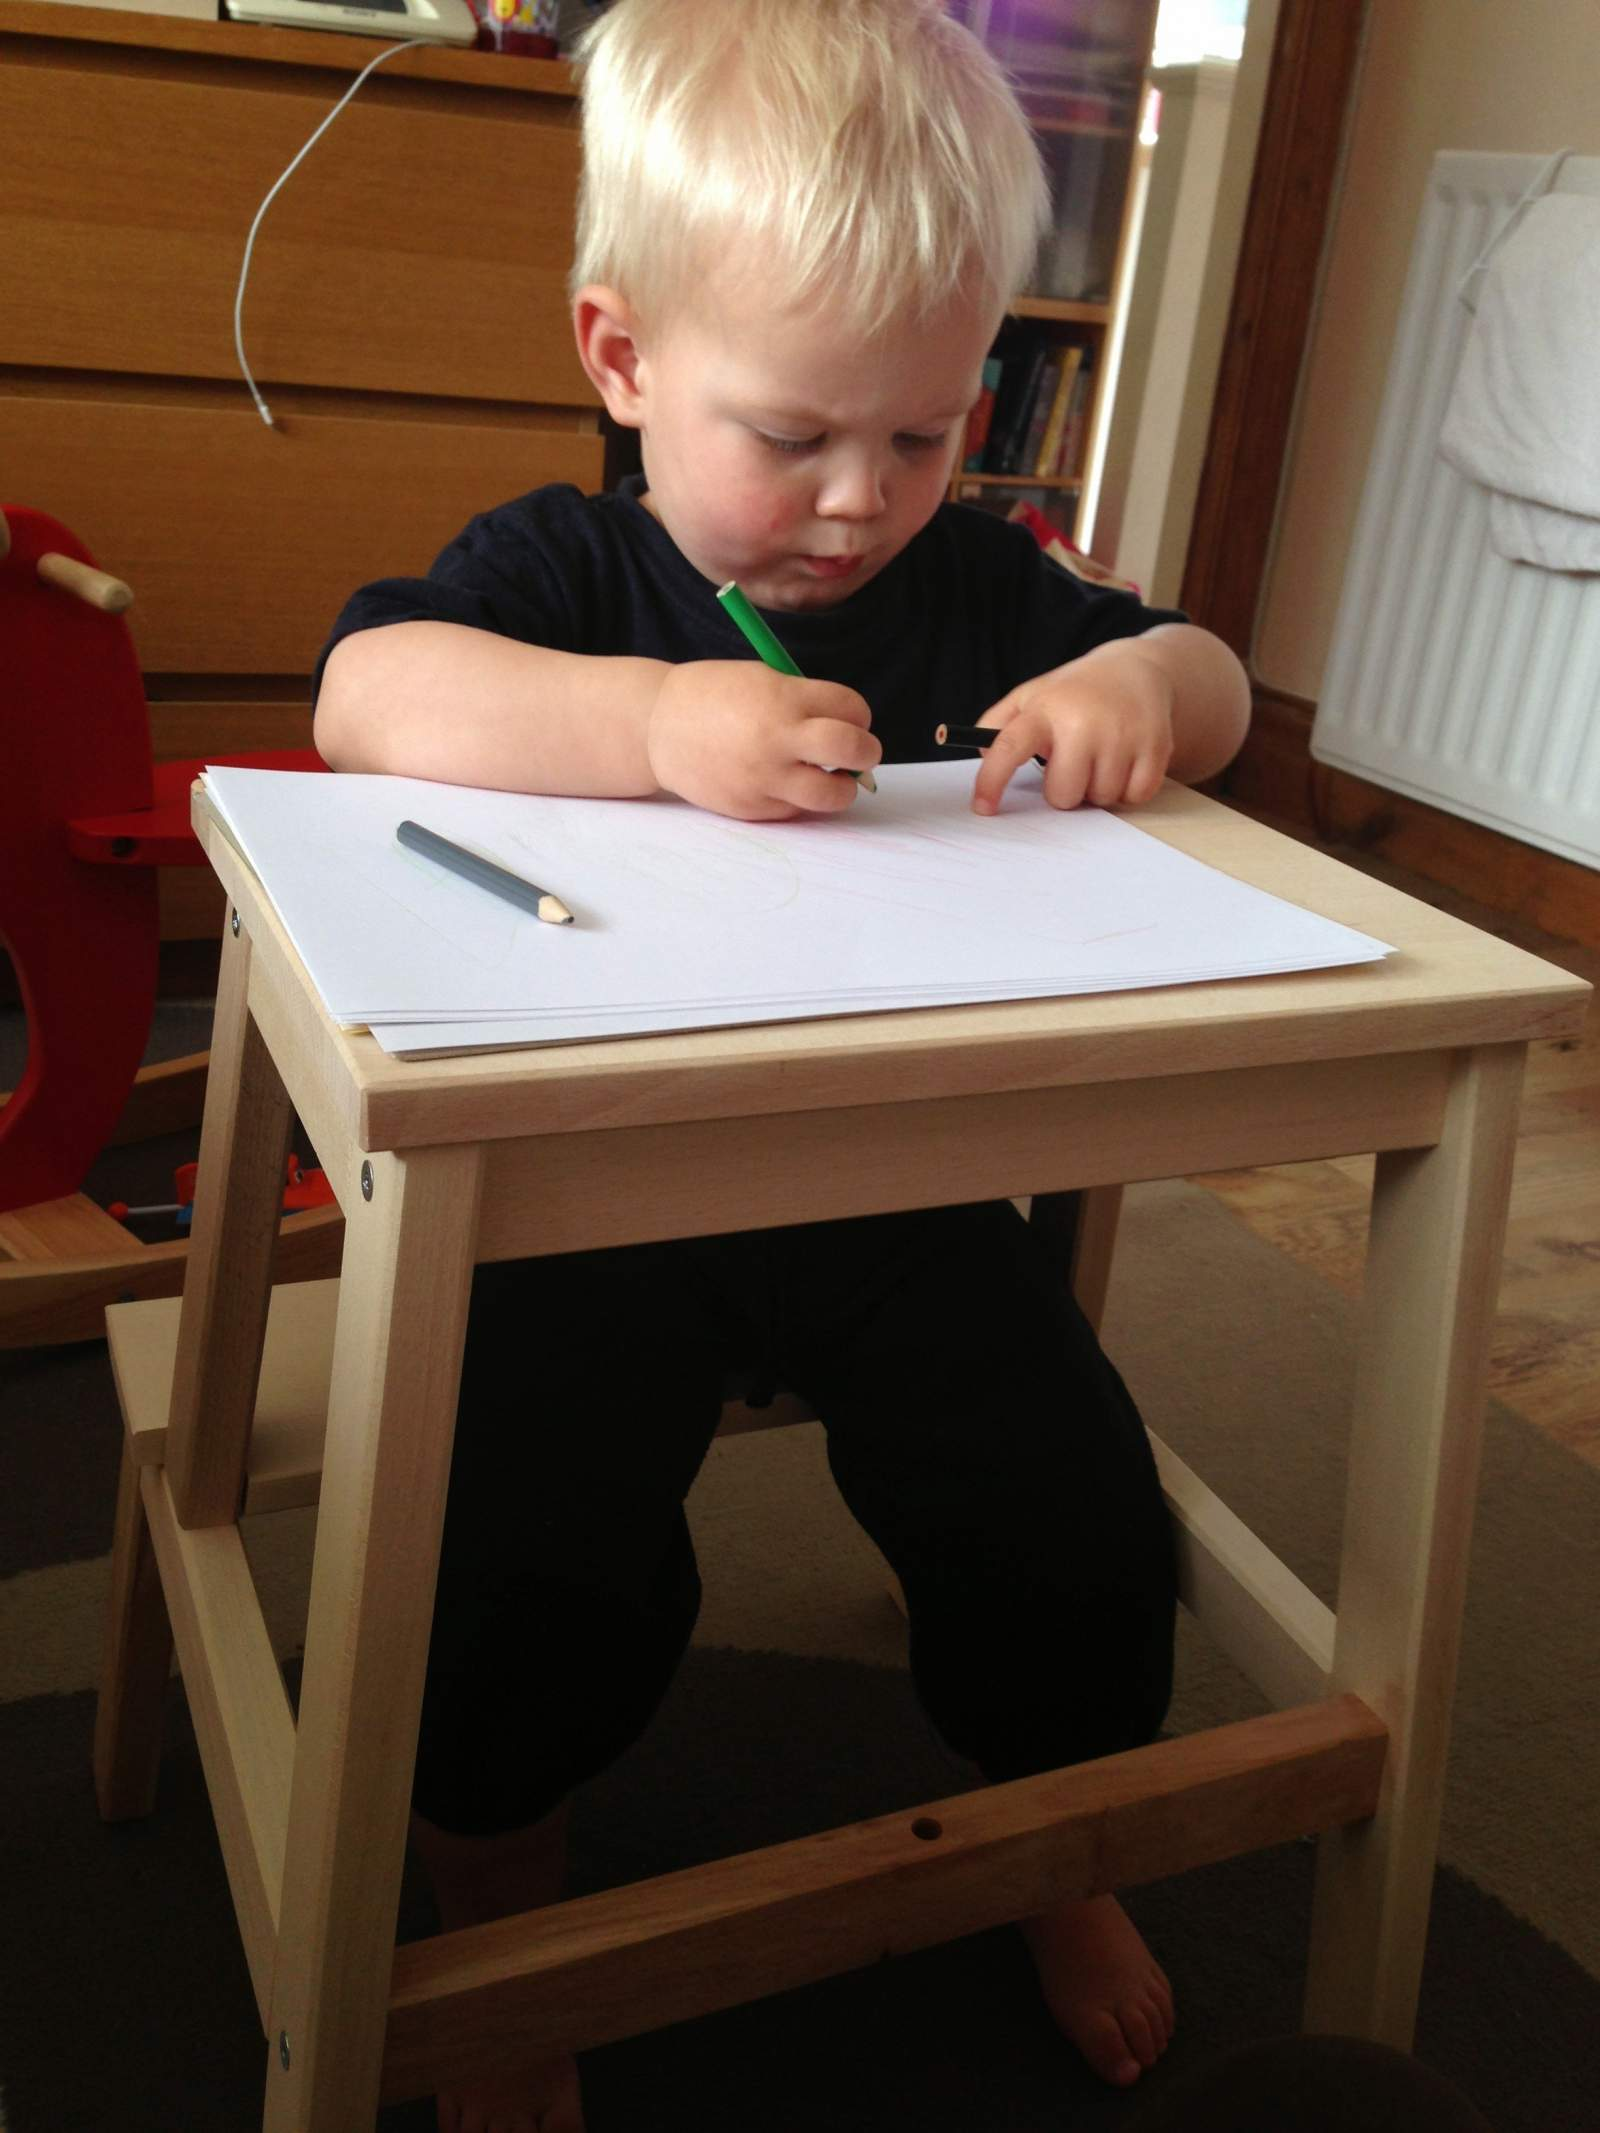 ikea footstool as a table for a toddler